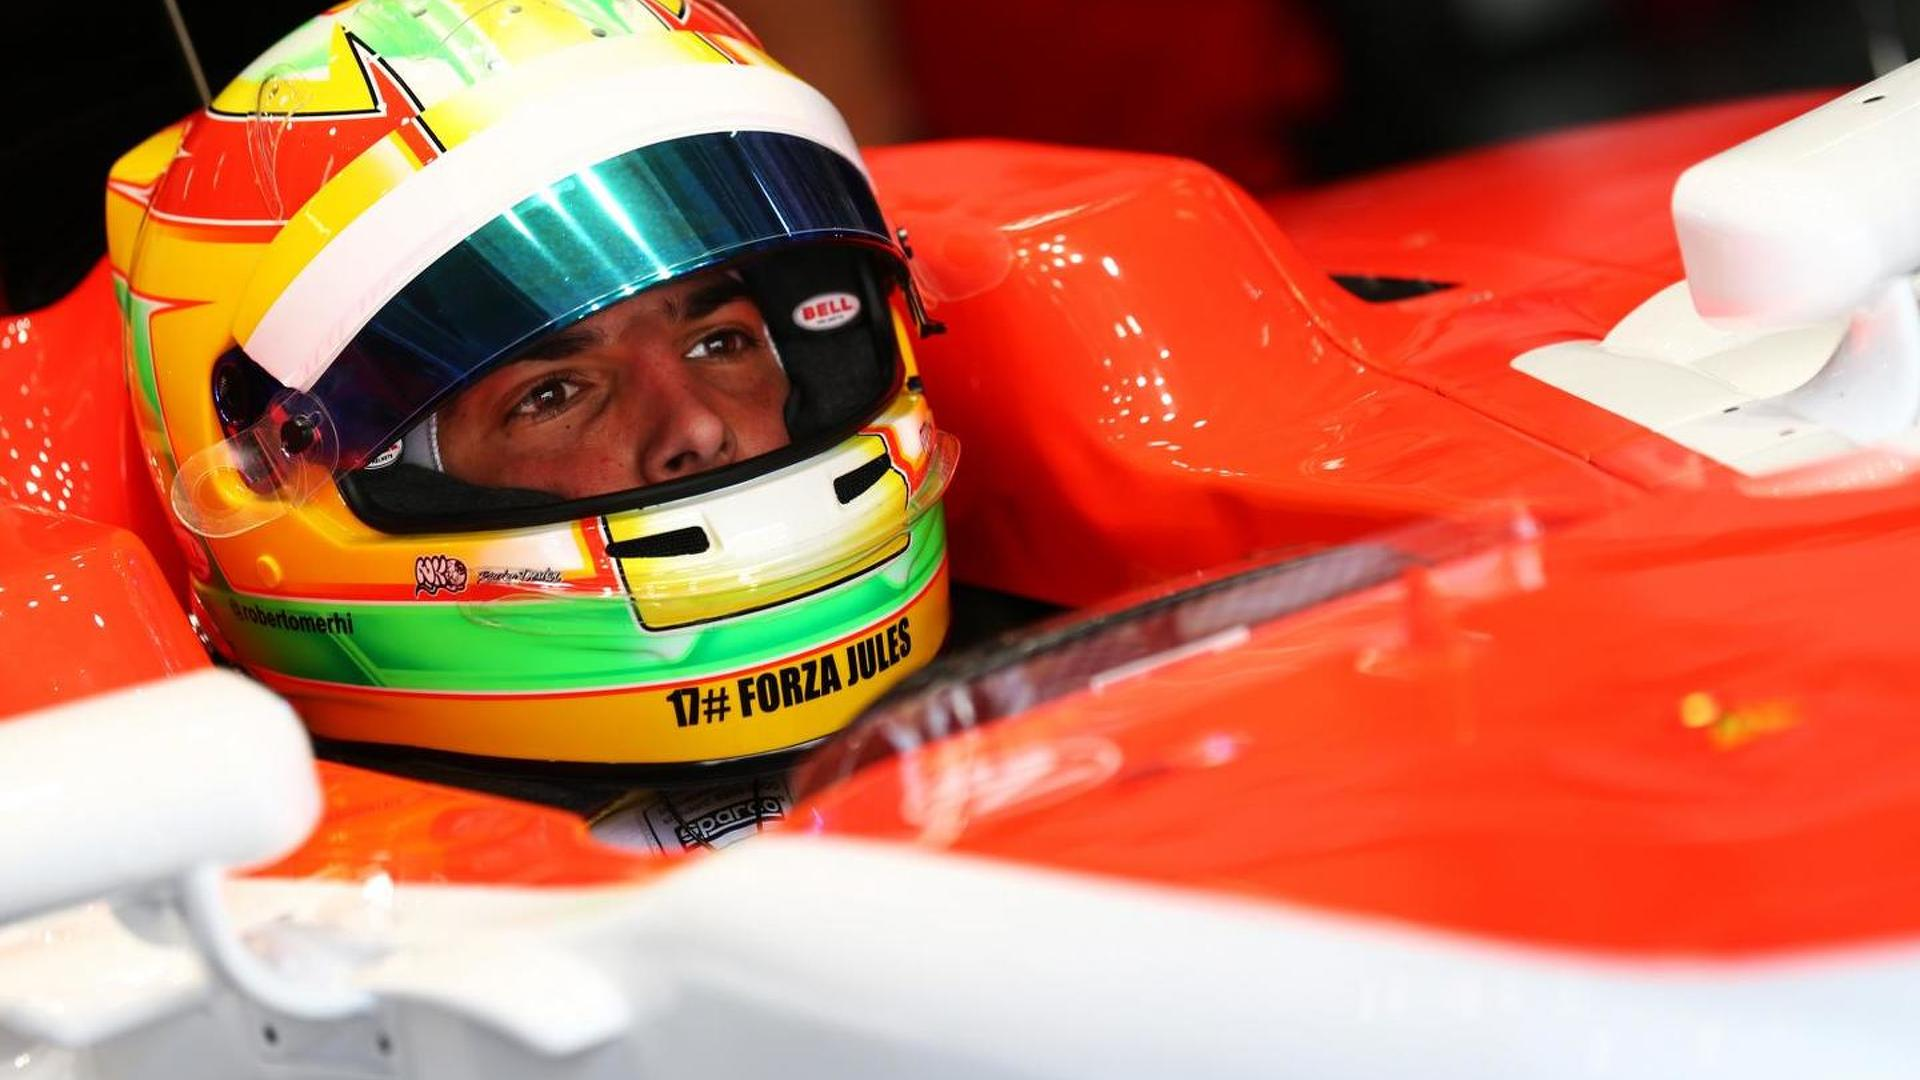 Merhi confident of China GP race seat